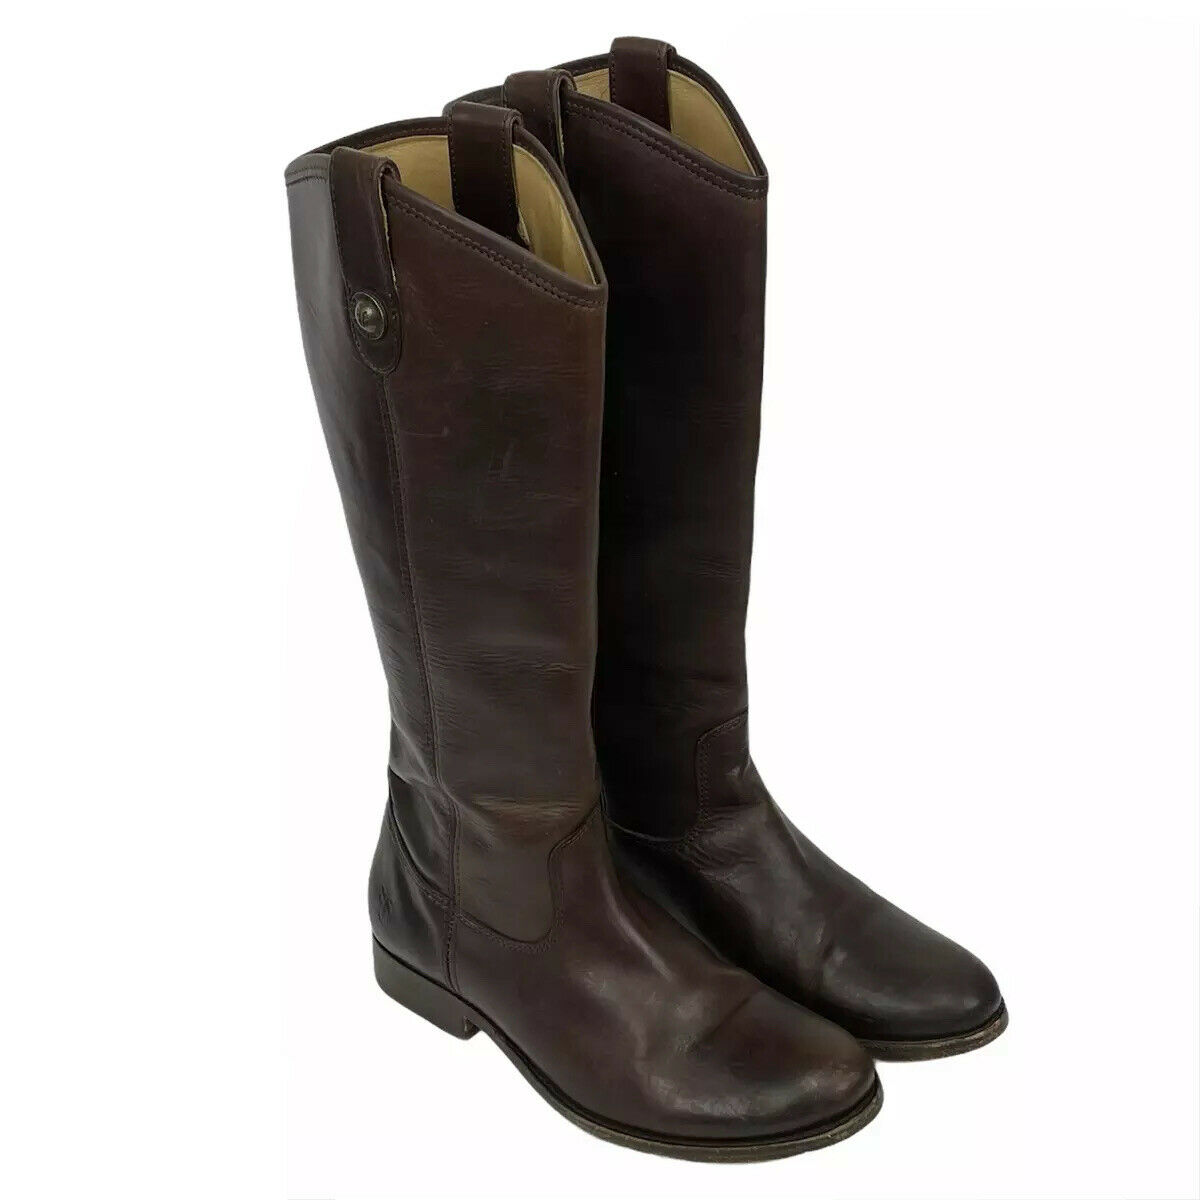 Frye Womens Boots Melissa Button Leather Dark Brown Riding 77167 Size 6.5 M